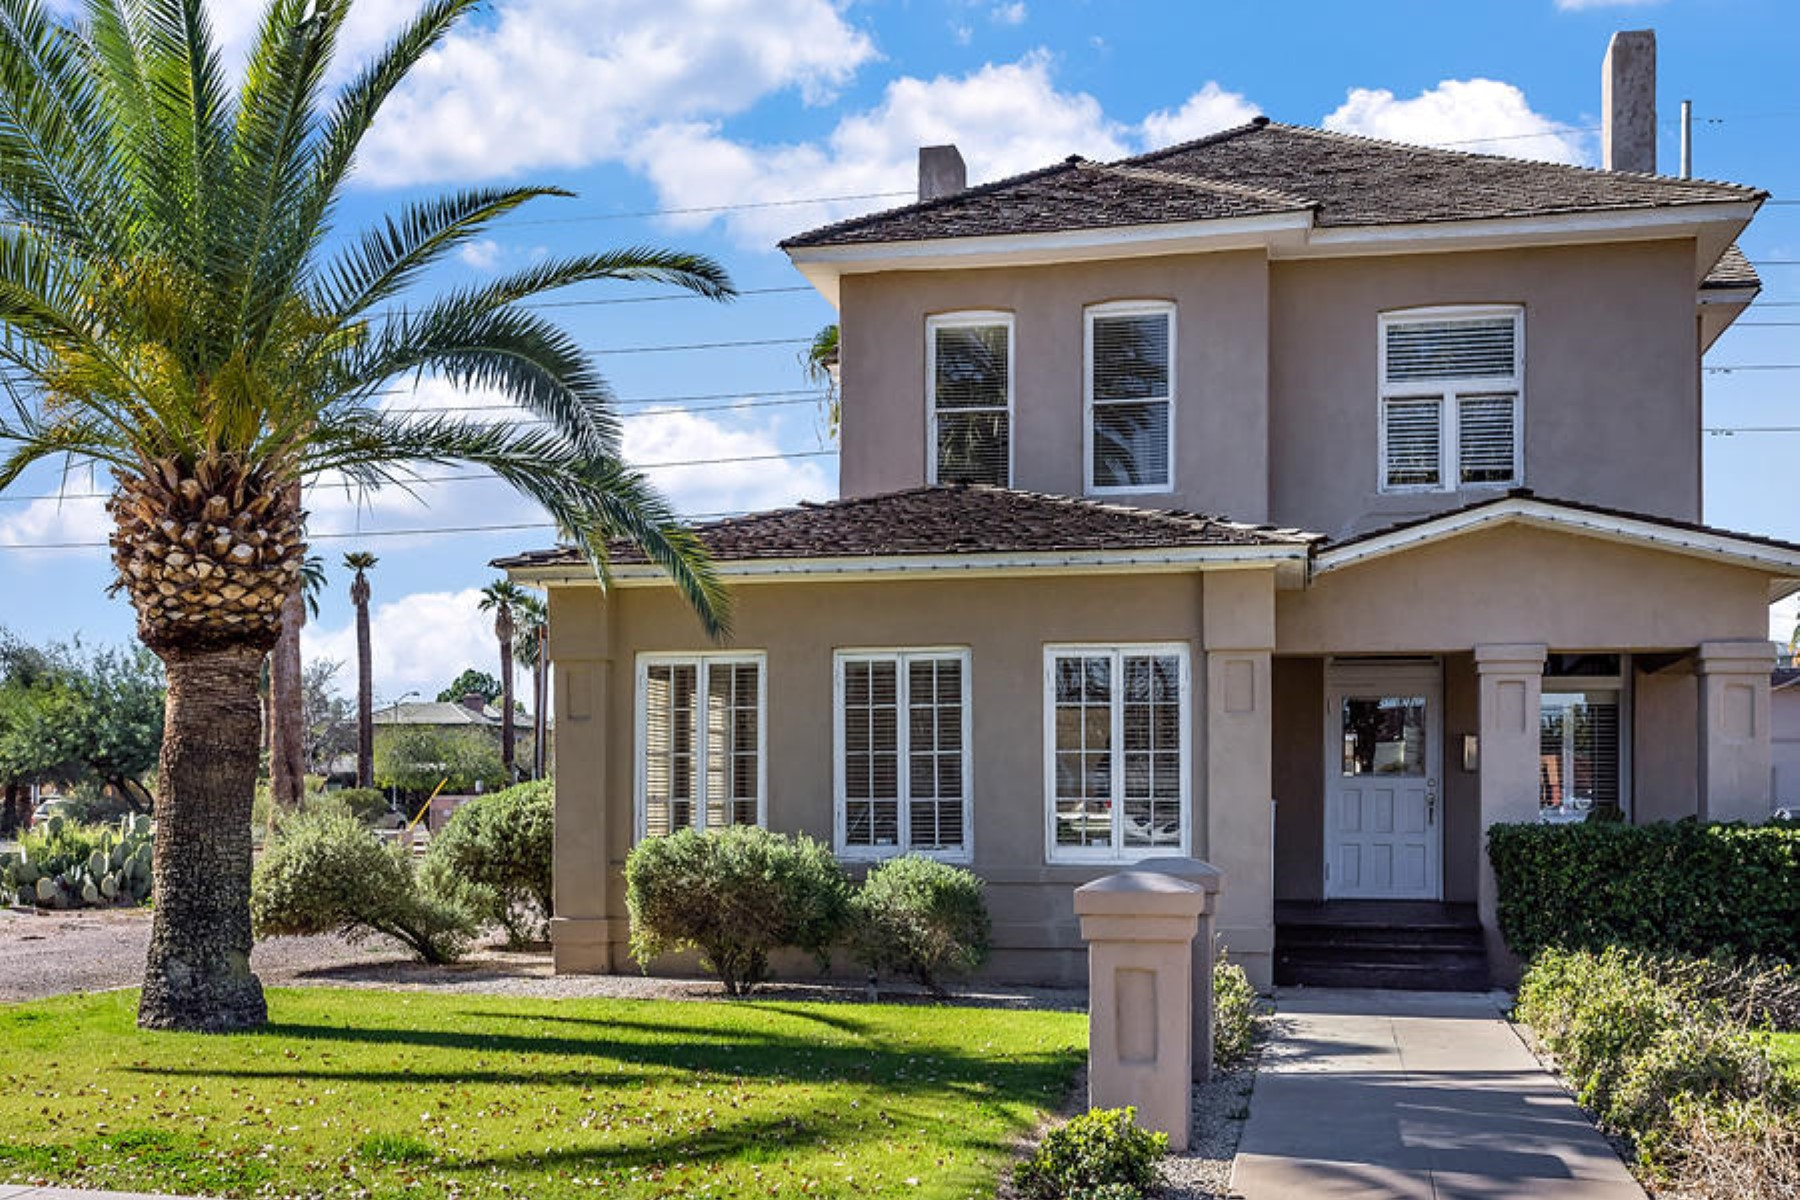 Vivienda unifamiliar por un Venta en Beautiful two-story property located in the Roosevelt Historic District 812 N 2nd Ave Phoenix, Arizona, 85003 Estados Unidos